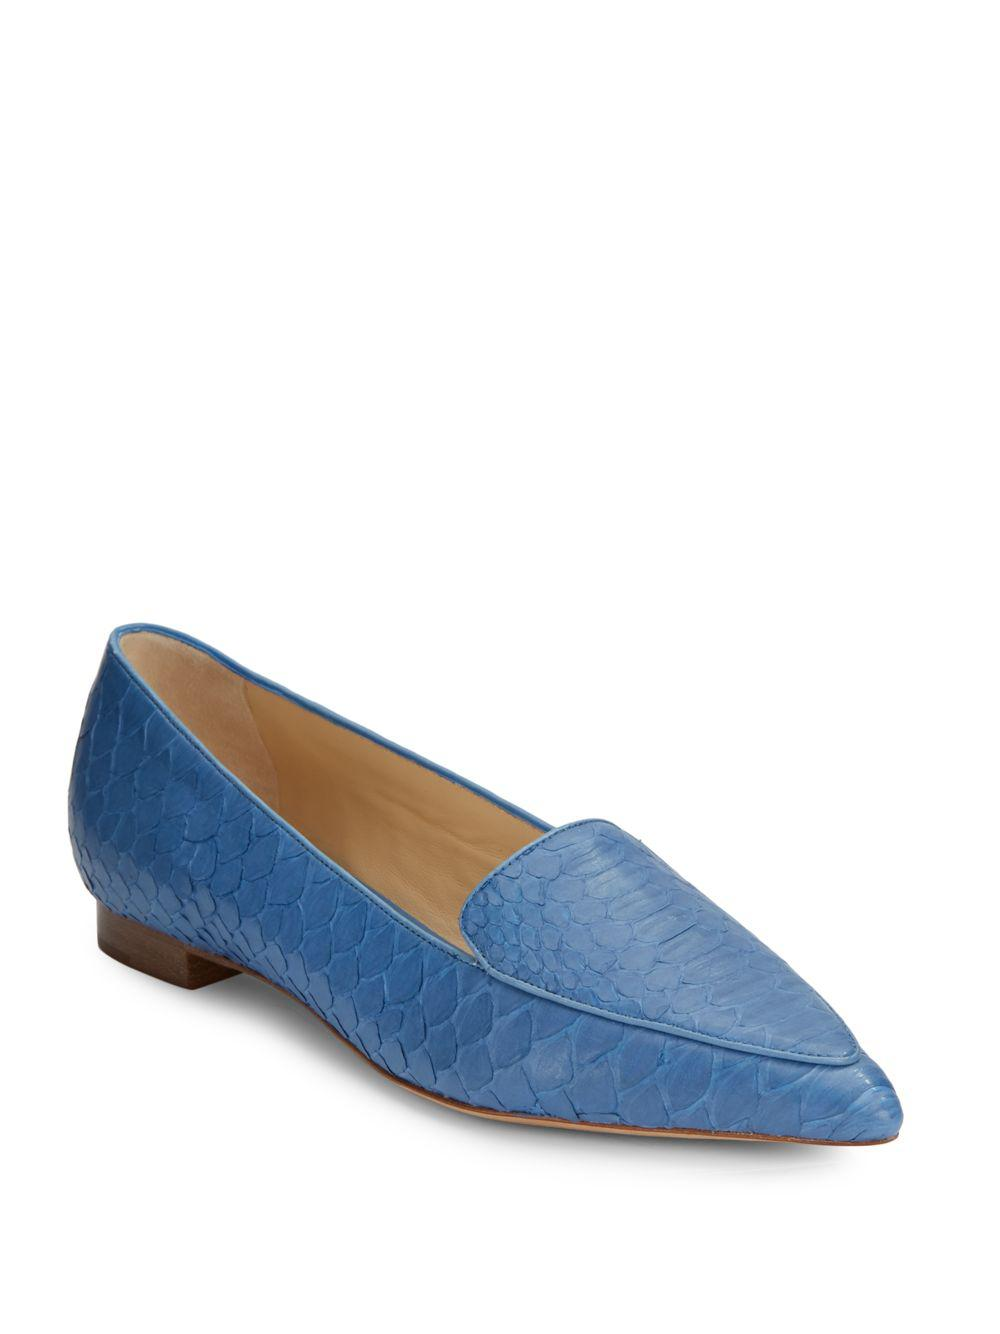 Alexandre Birman Suede Round-Toe Flats outlet countdown package cheap wholesale price zmlSn